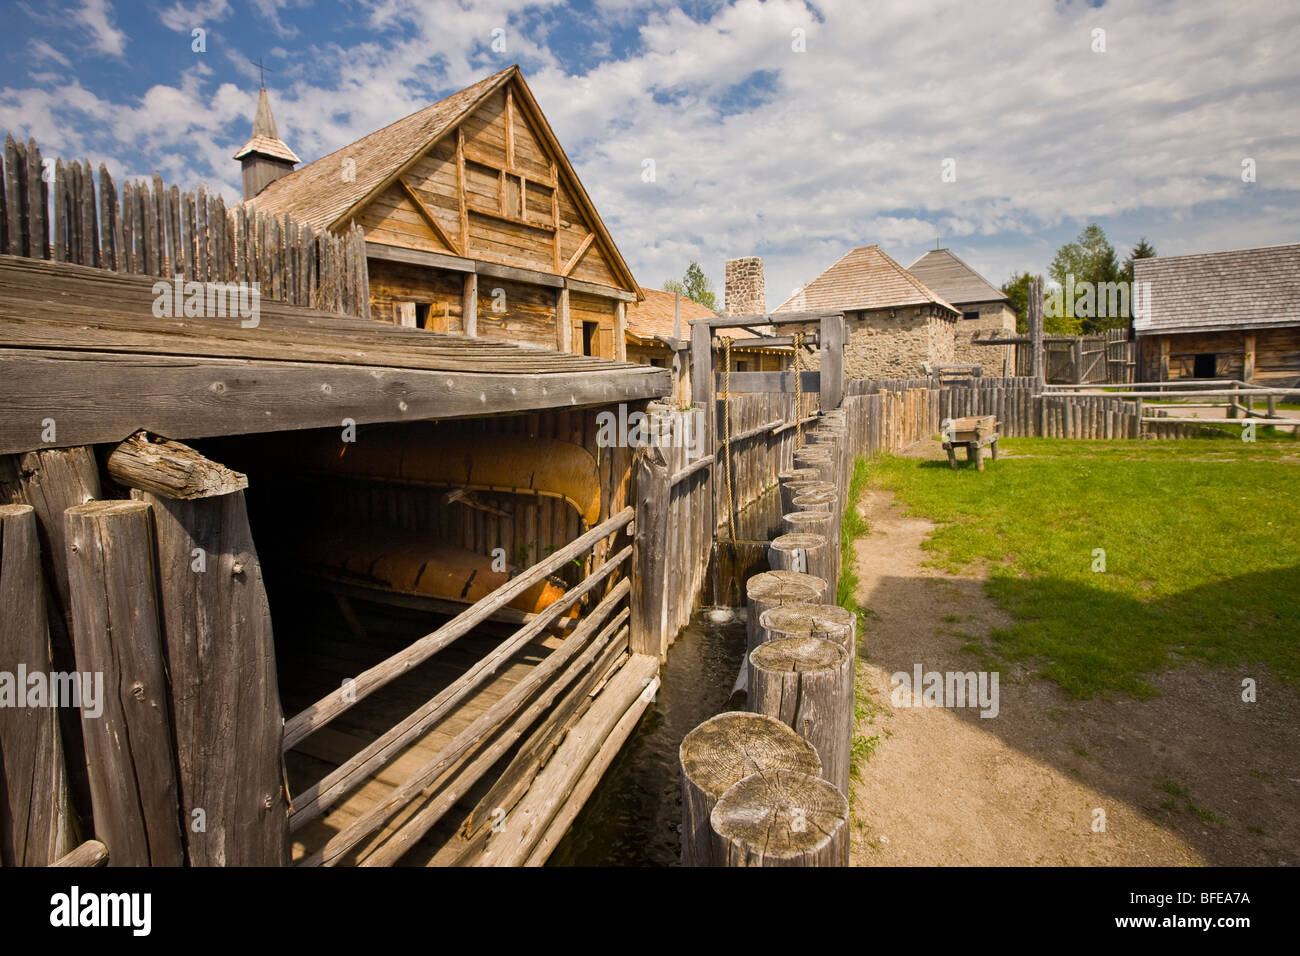 Canoe shed at the Sainte-Marie Among the Hurons settlement in the town of Midland, Ontario, Canada - Stock Image